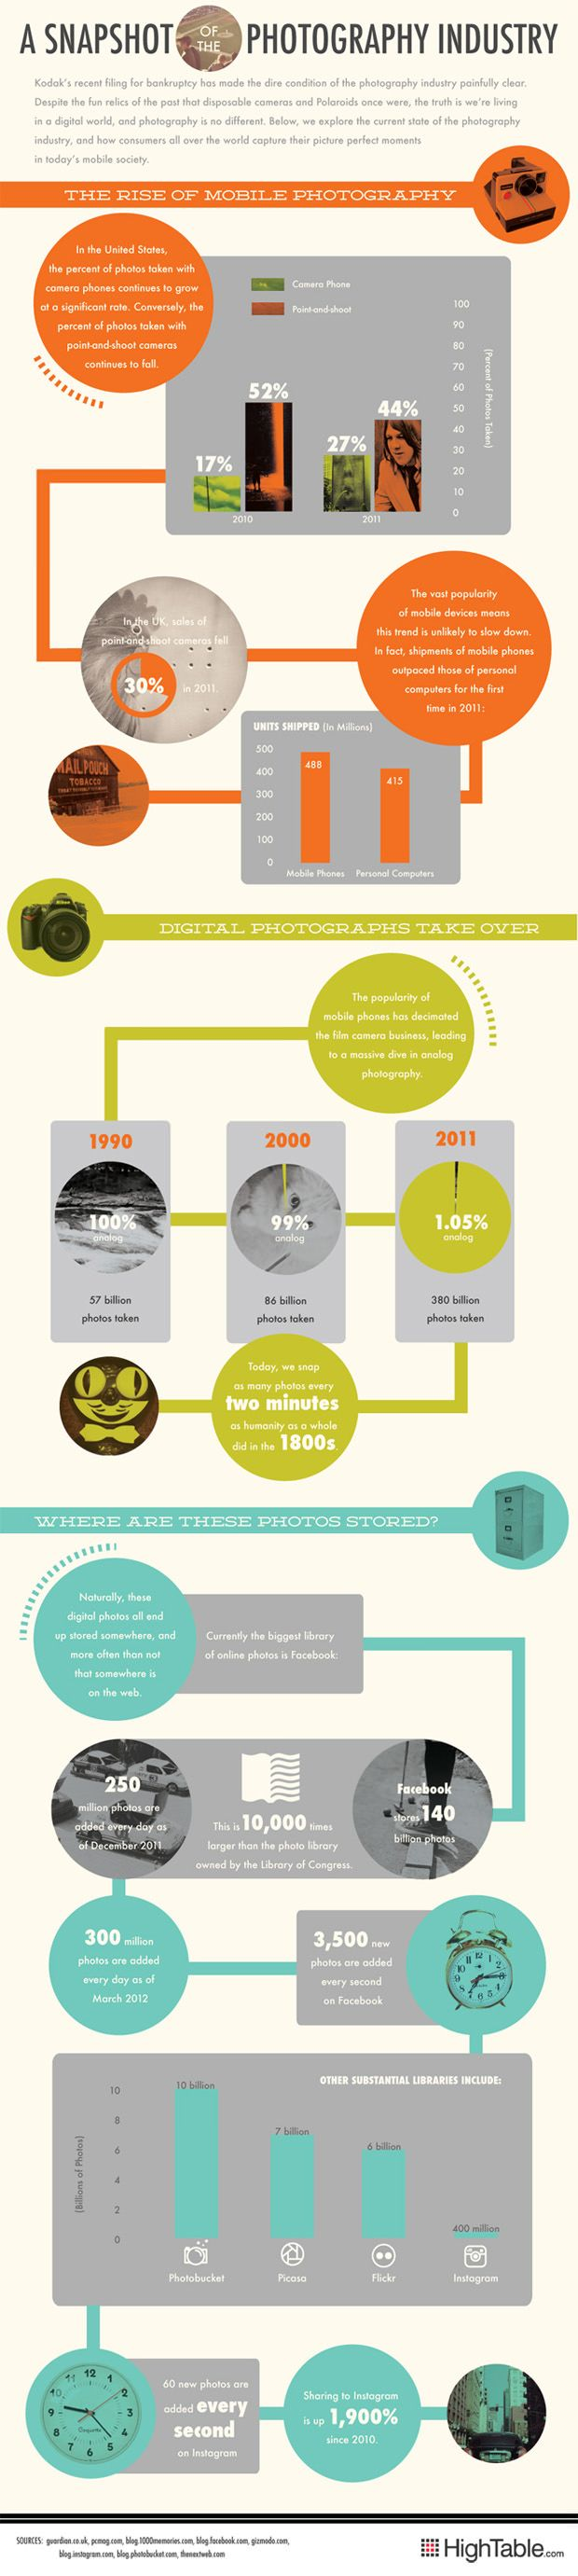 A Snapshot of the Photography Industry (via PetaPixel)